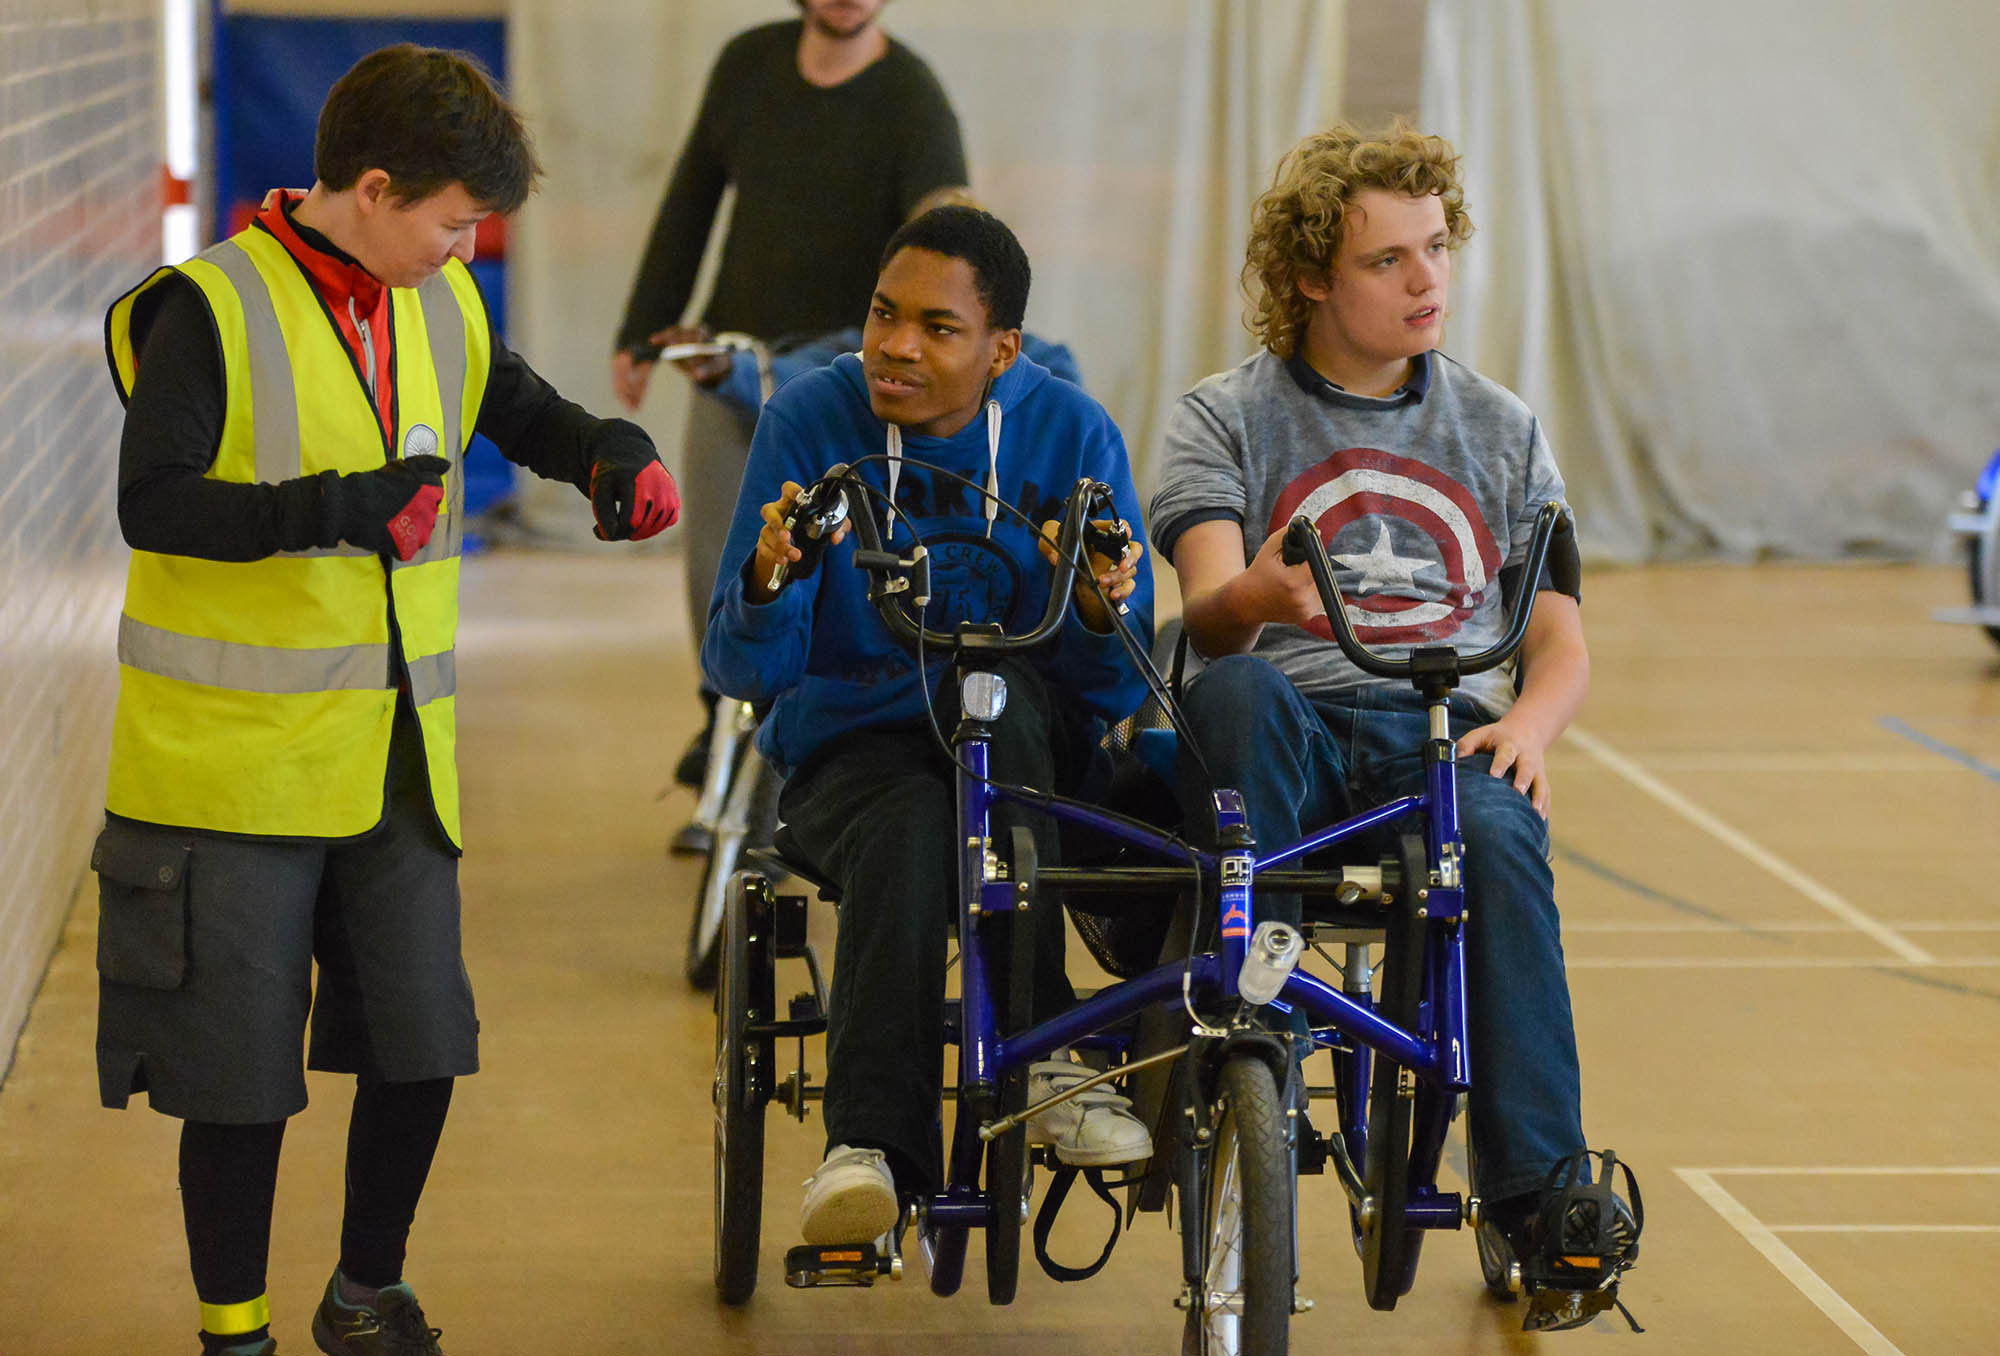 woman instructor with two boys in wheelchair